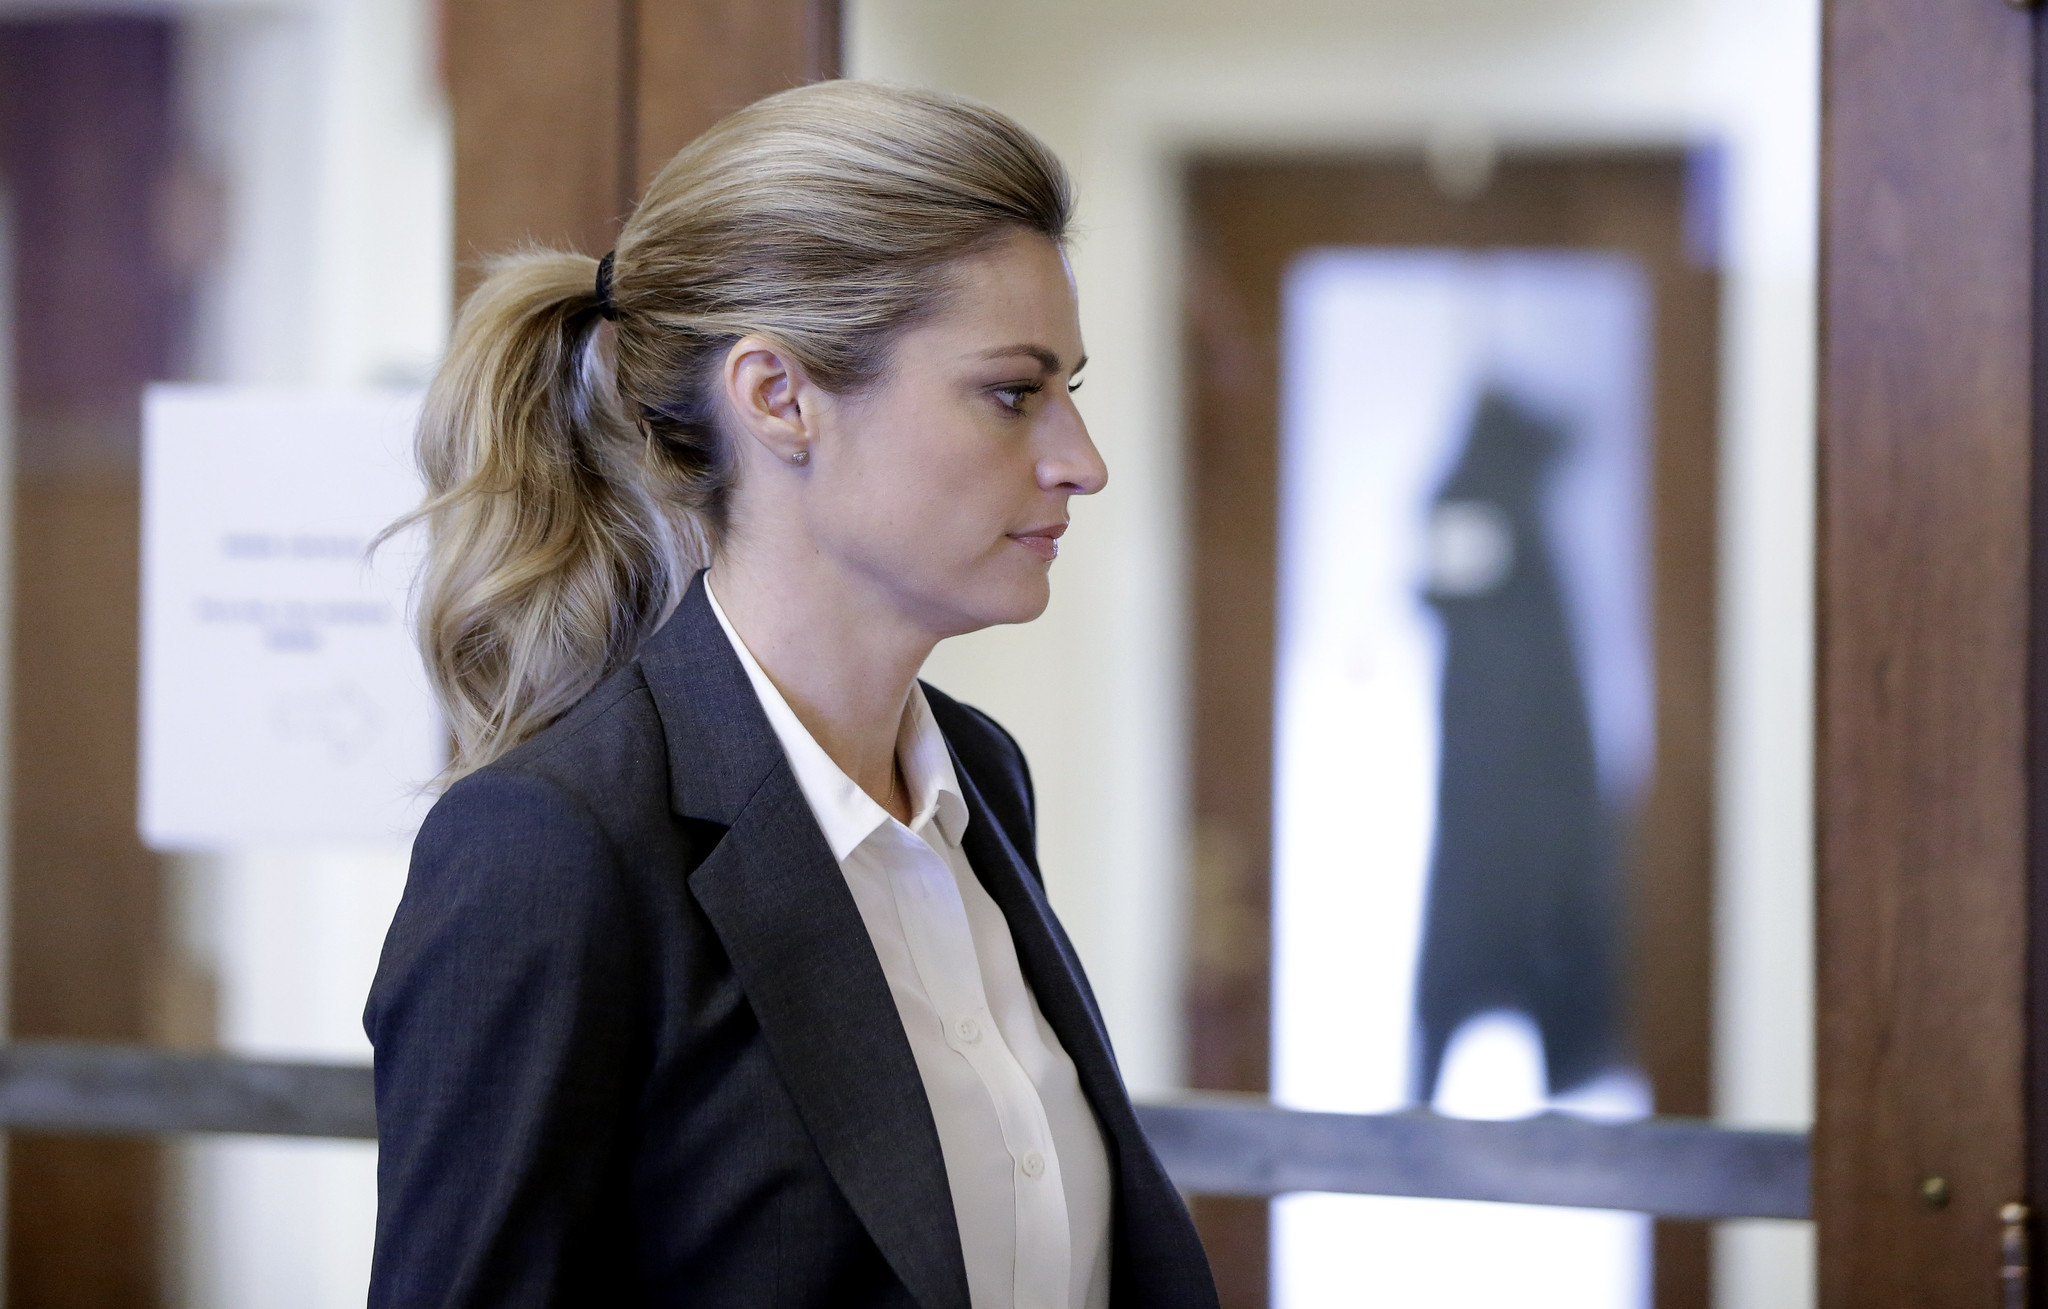 Jury awards $55 million to Erin Andrews in lawsuit over